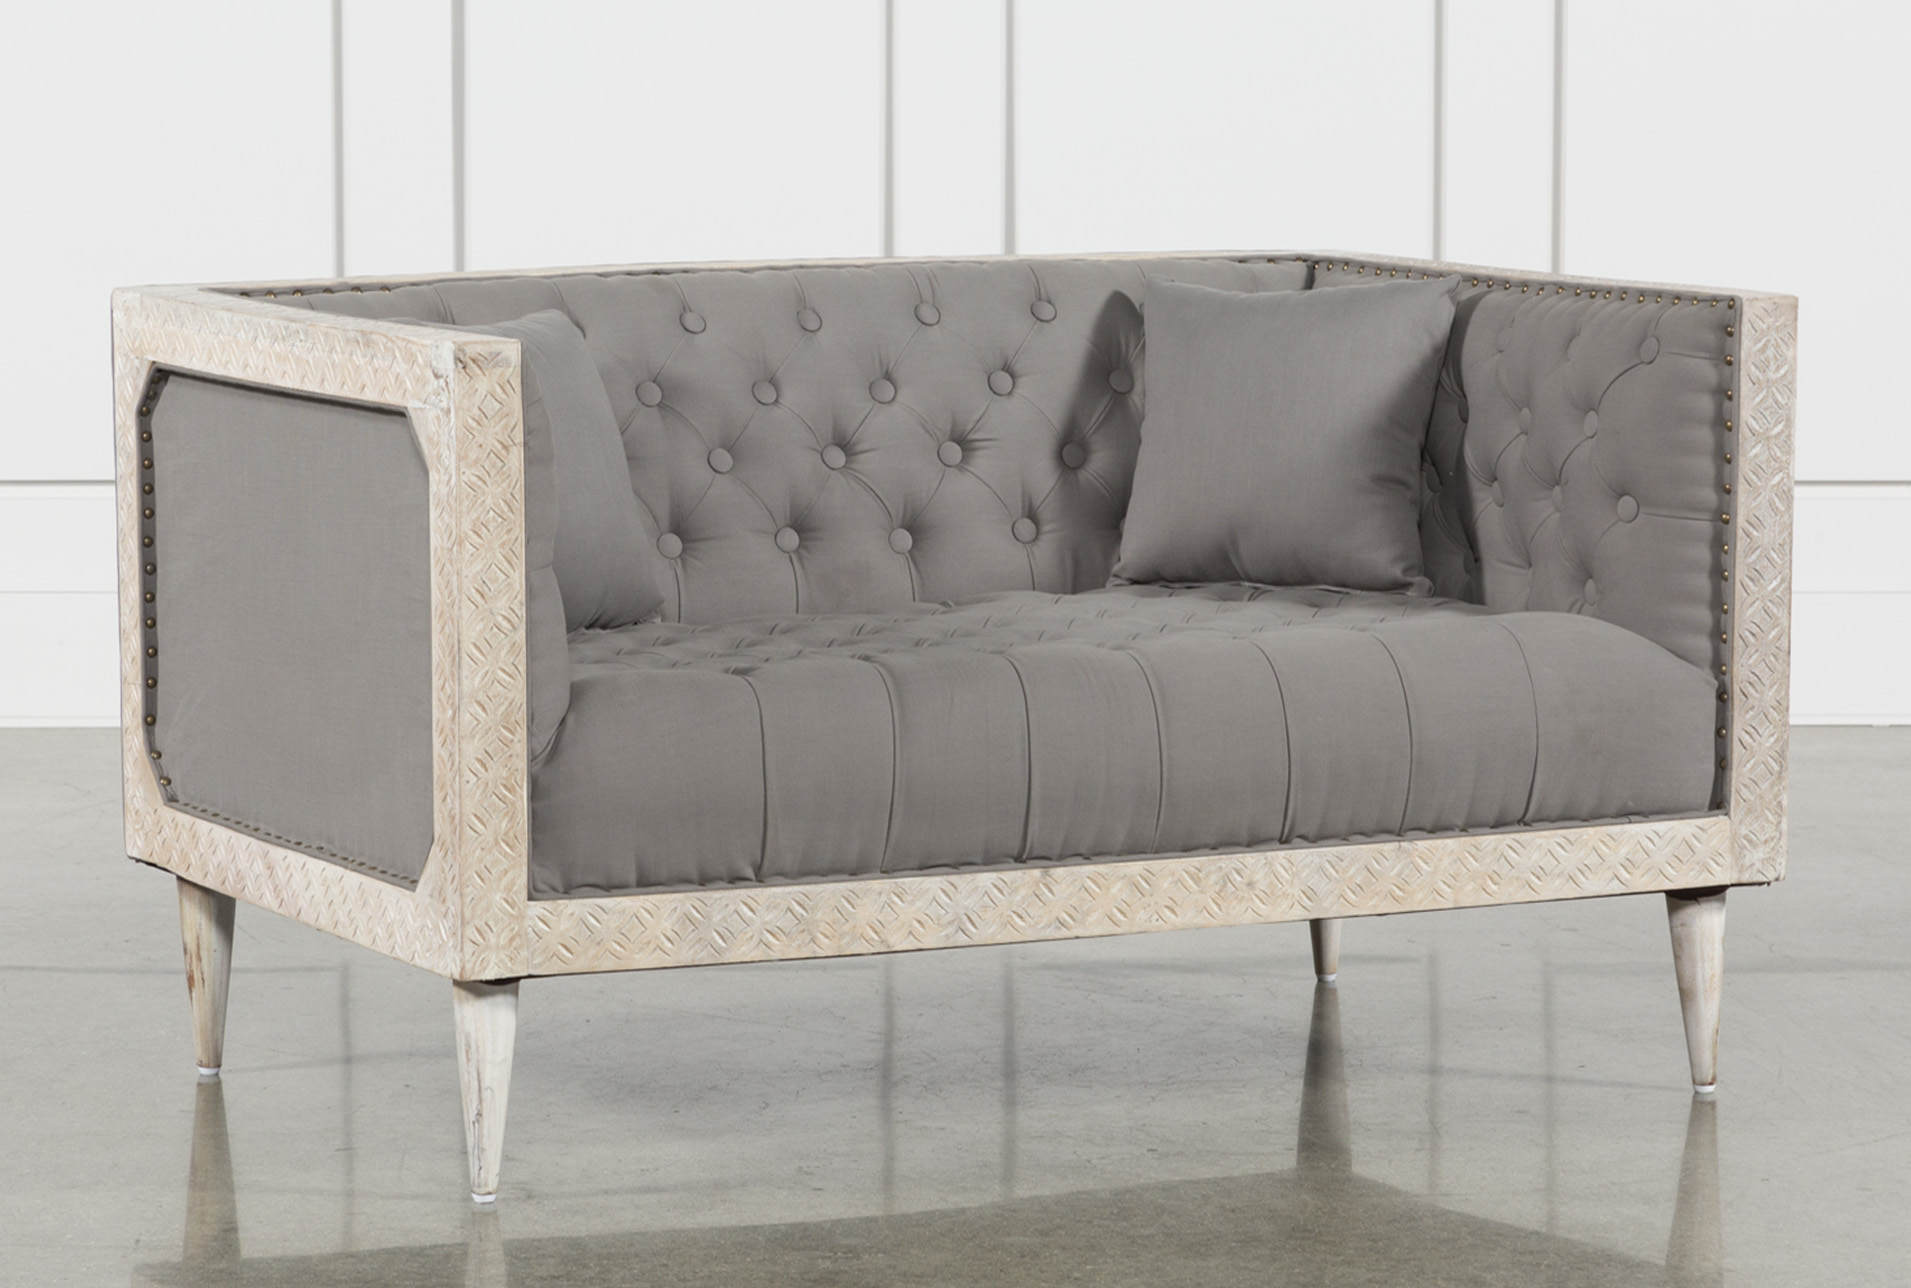 Gentil Oversized Grey Tufted Chair With White Wash   360 Elements